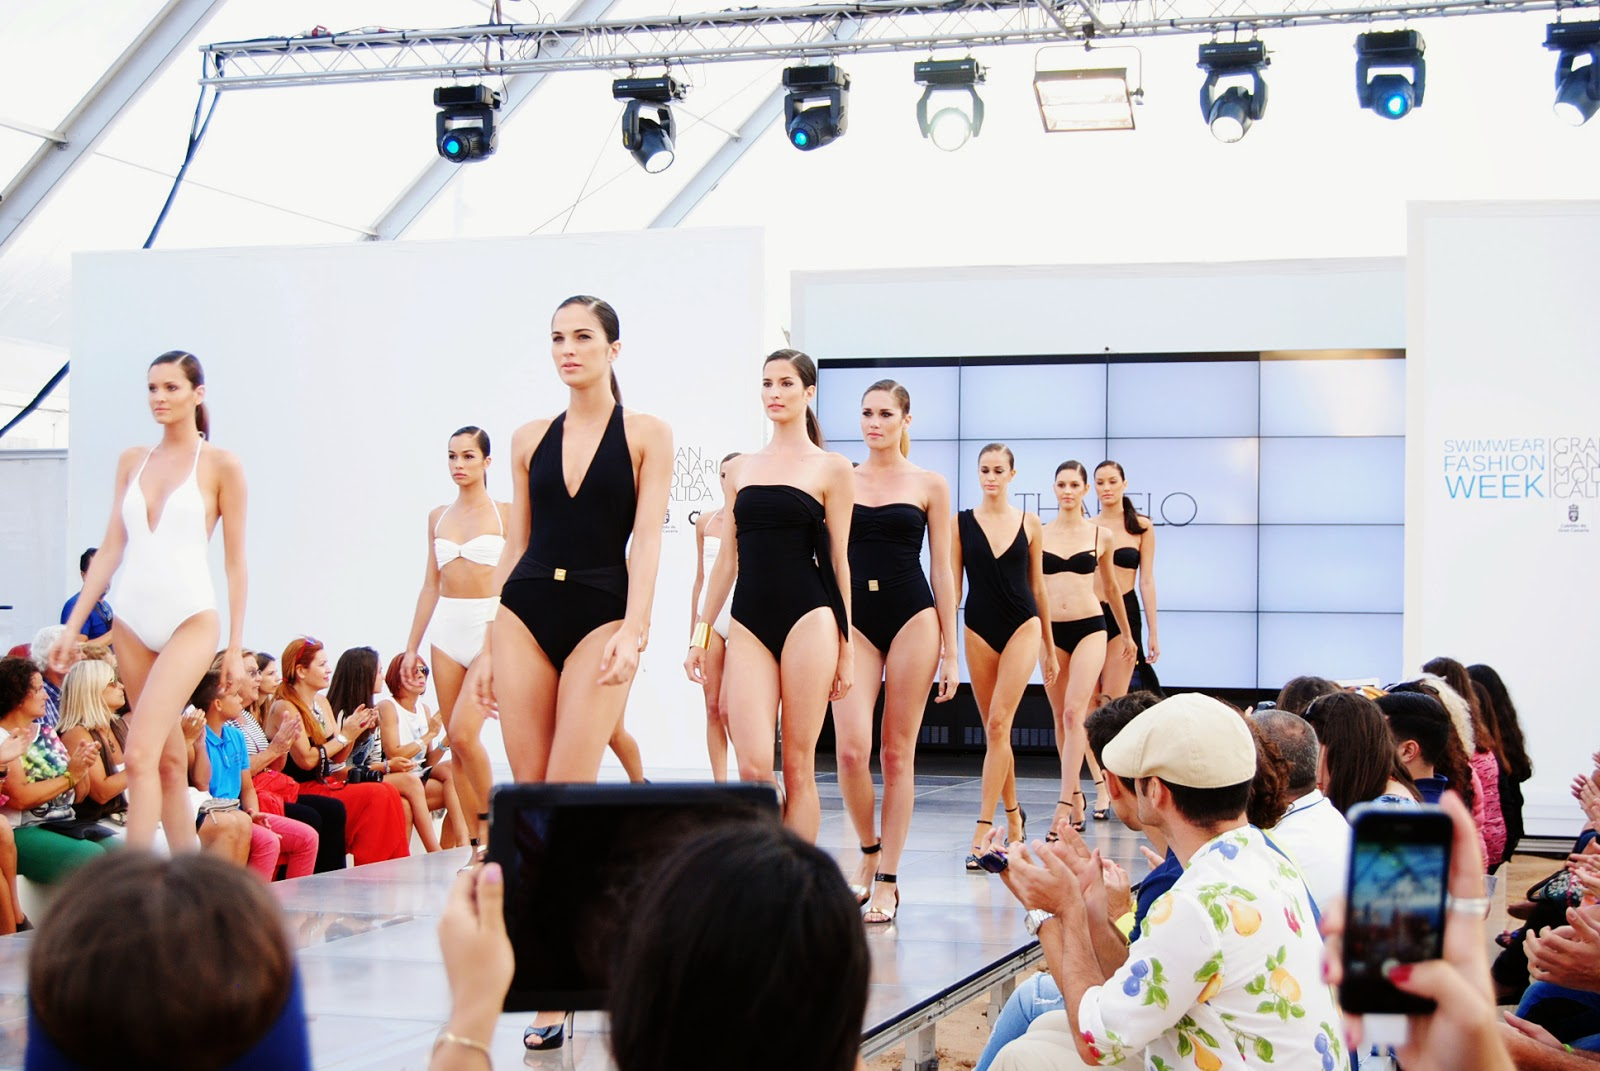 moda calida, gran canaria fashion week, gcmc, gcmodacalica2014, thapelo paris, swimwear,